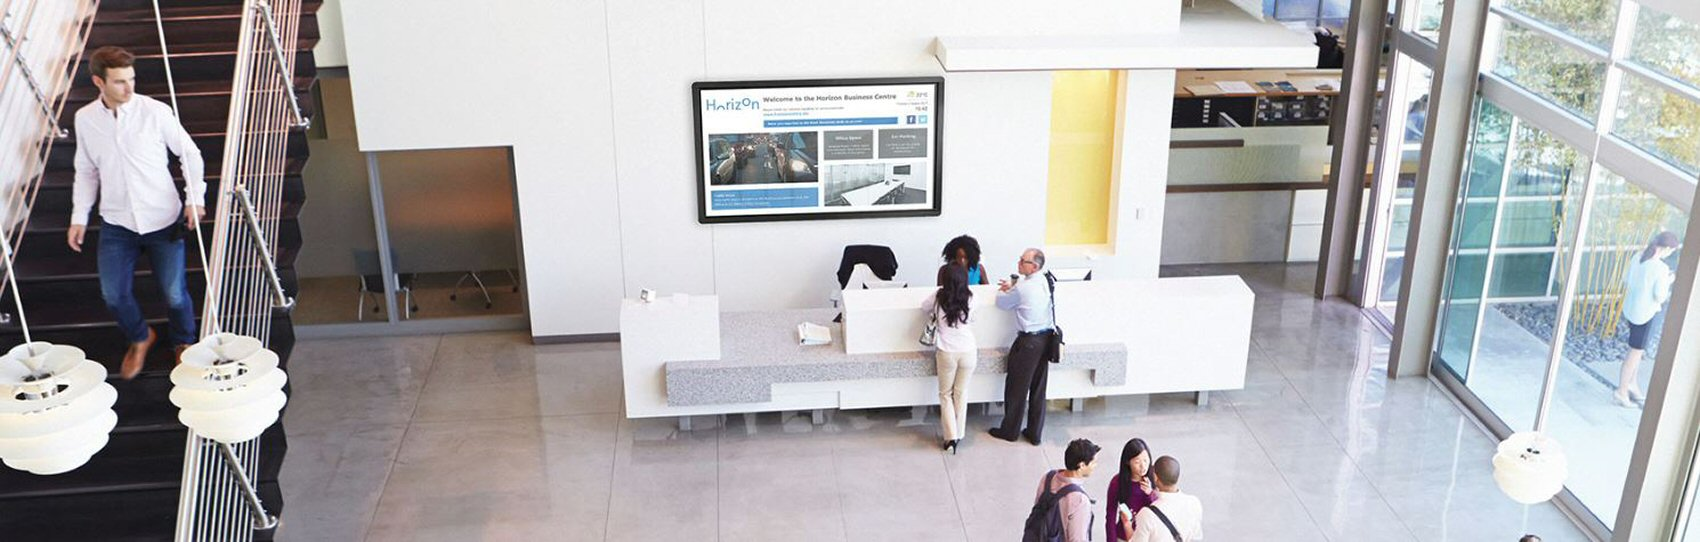 School reception area sedao digital dignage screen